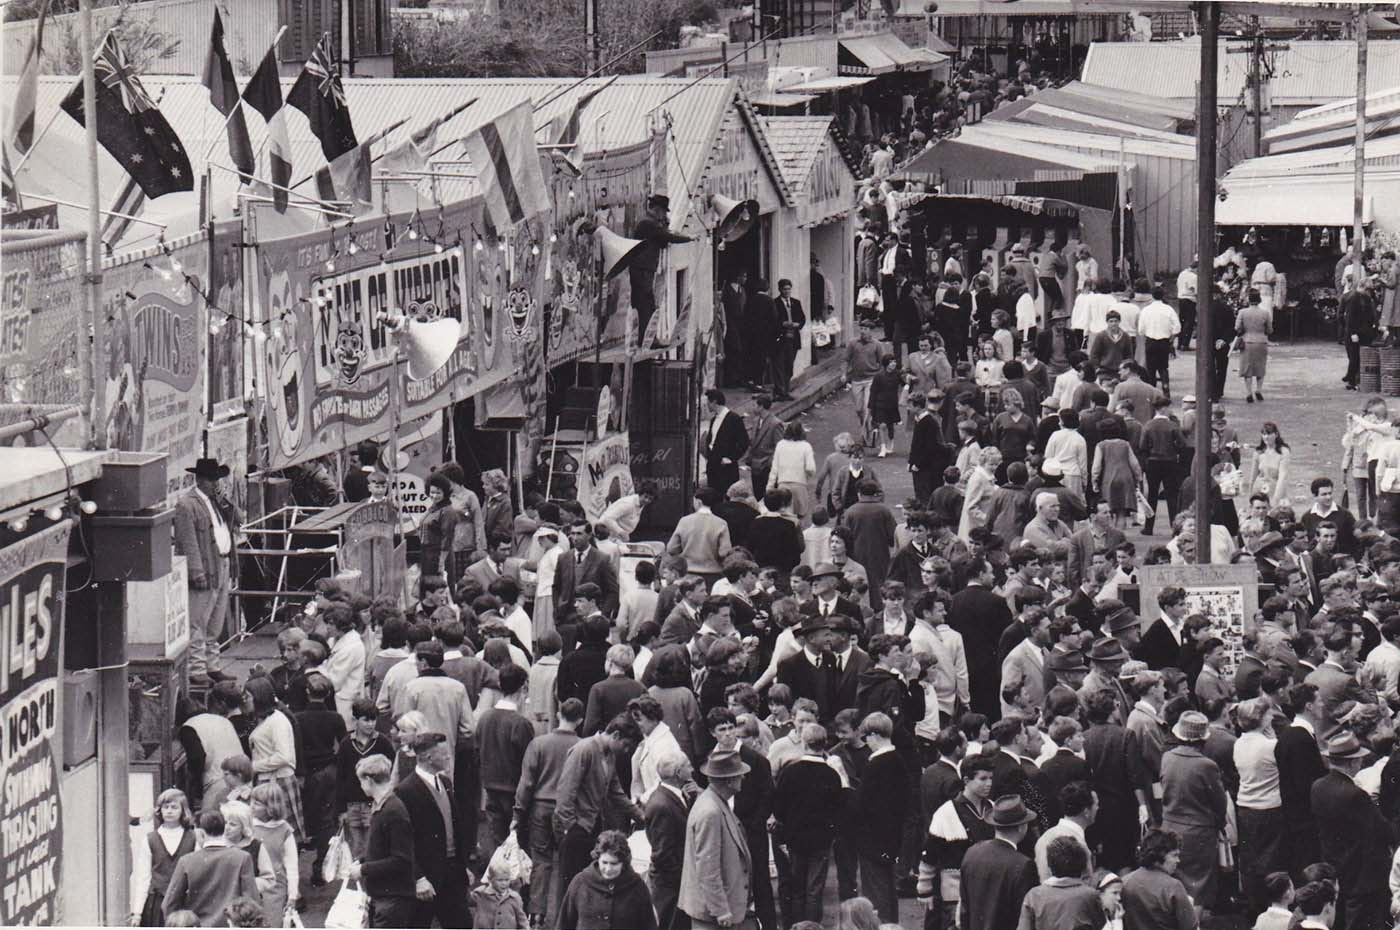 A crowd of people making their way through the sideshow alley at the Royal Adelaide Show. - click to view larger image